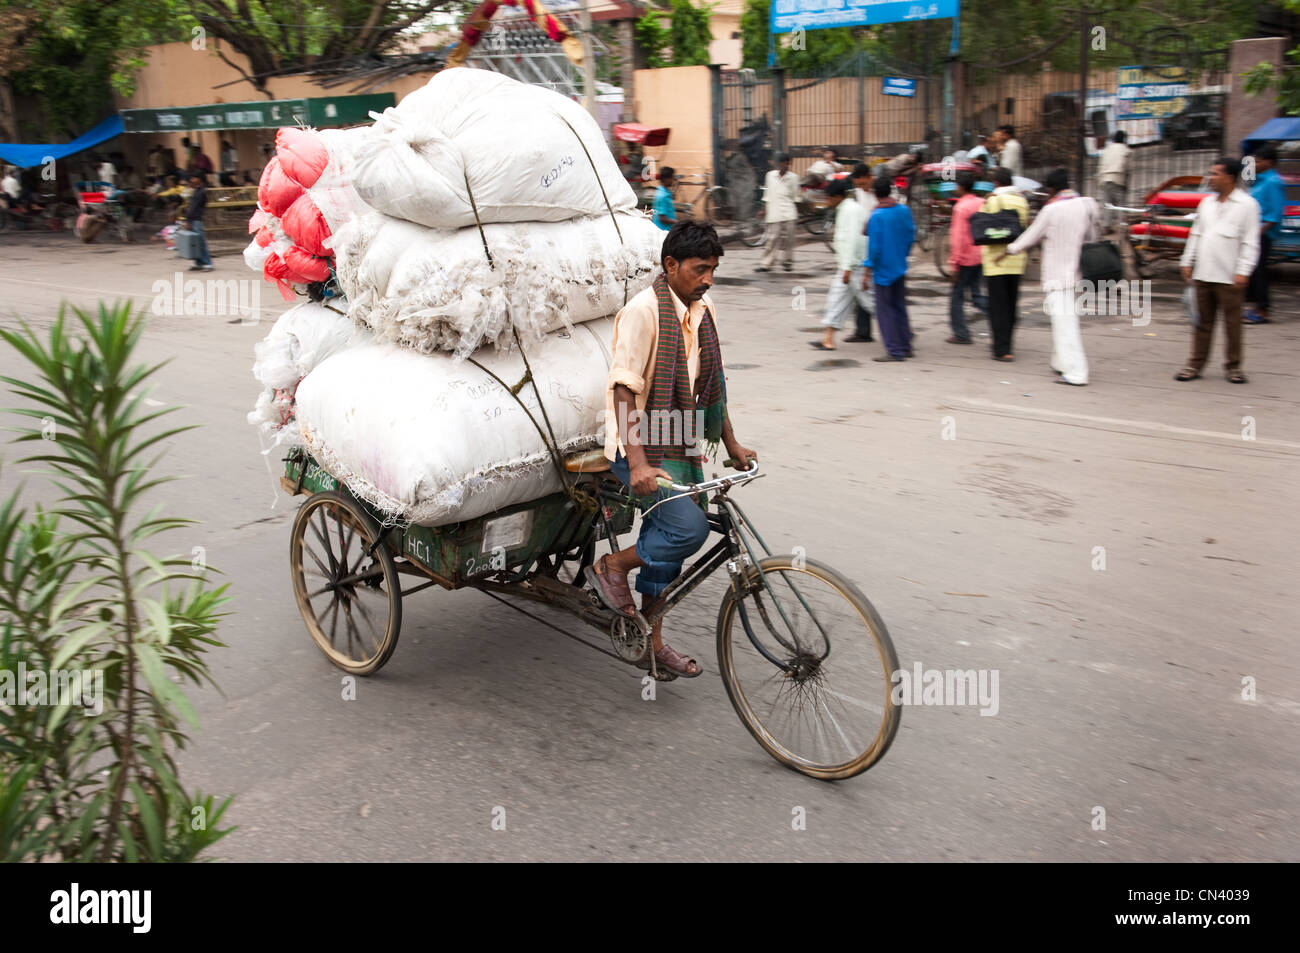 A busy street scene in India - Stock Image